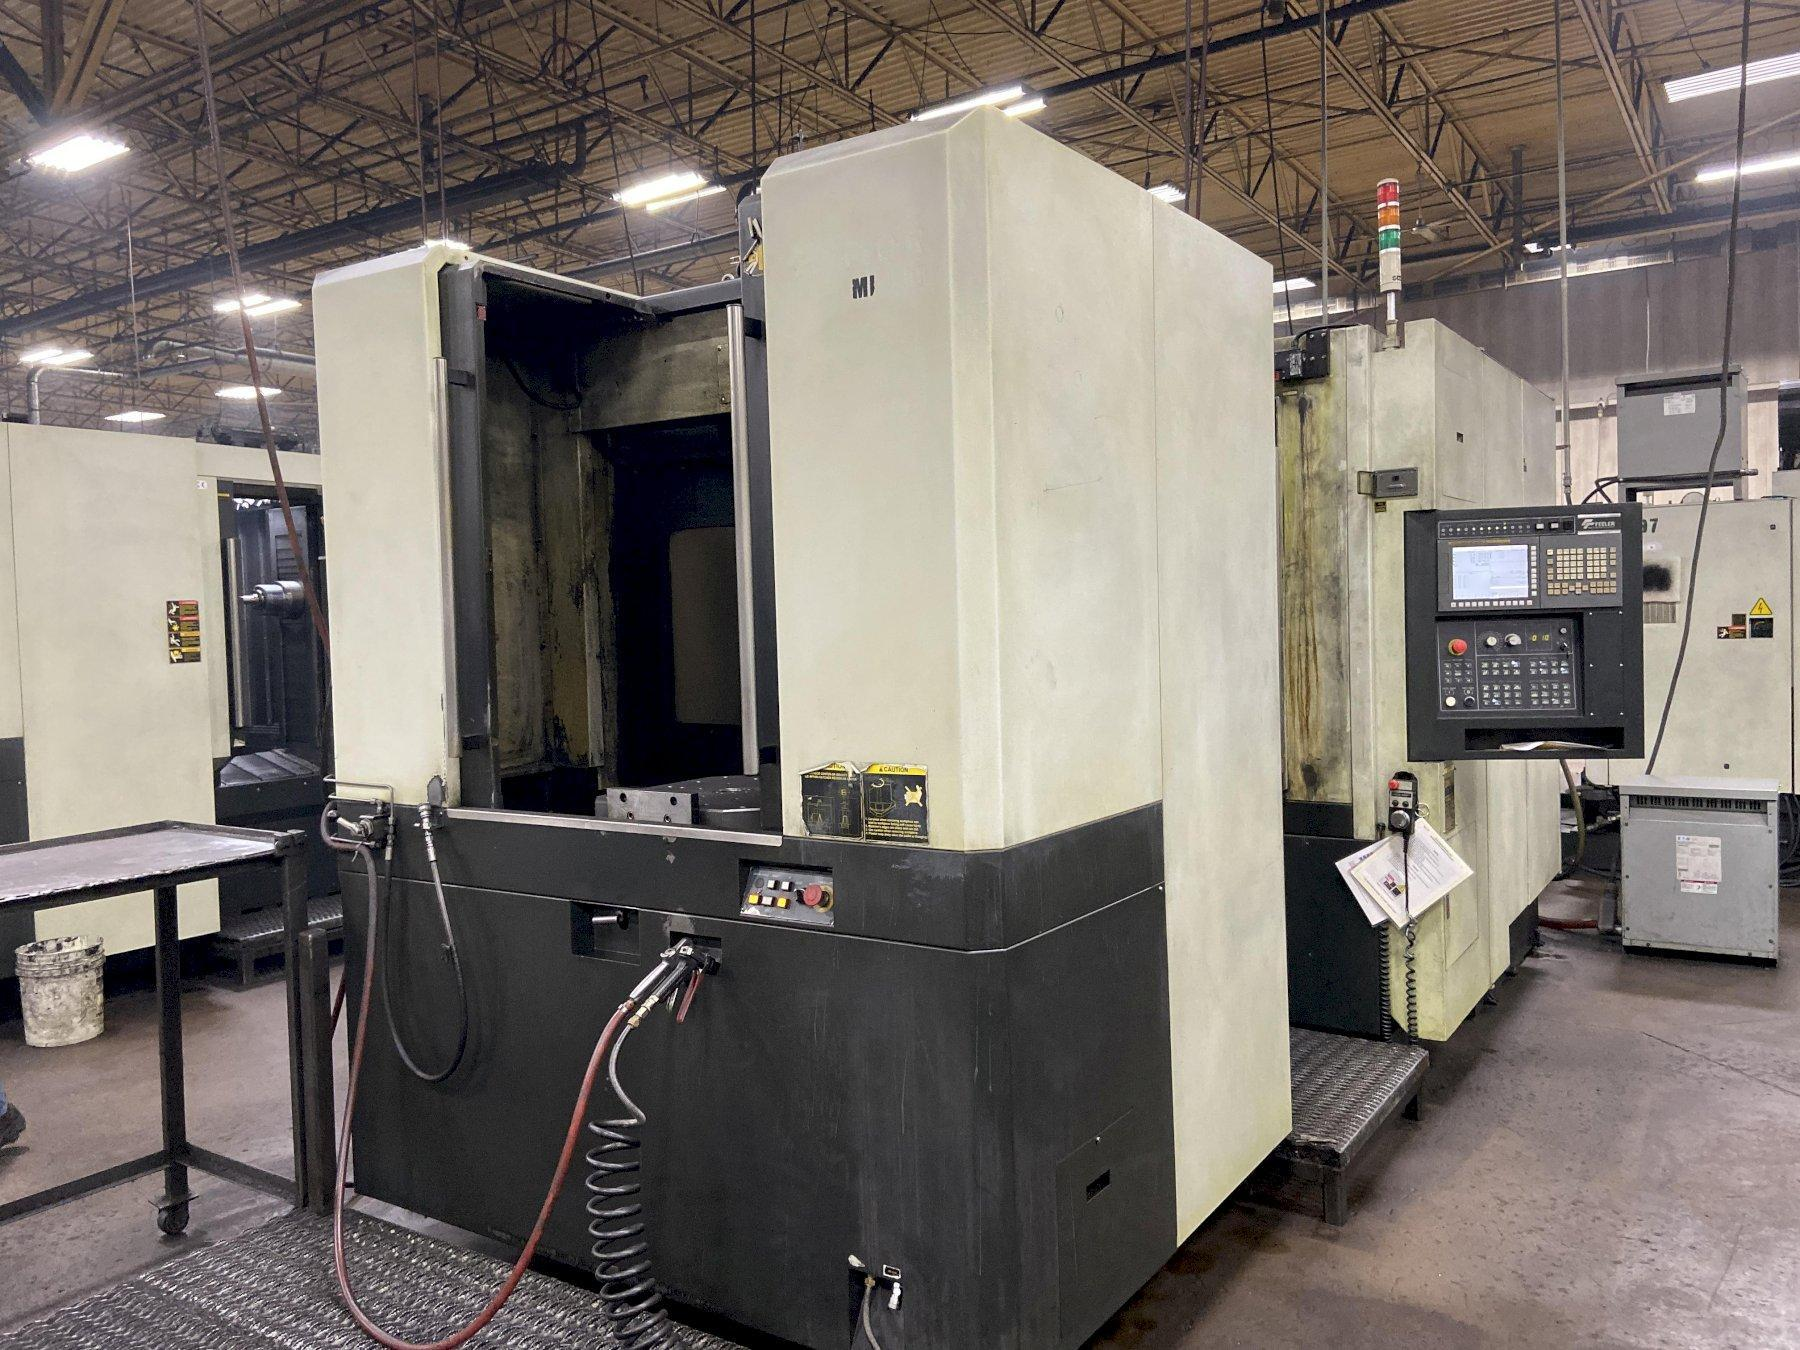 """Feeler FMH-500 CNC Horizontal Machining Center, Fanuc 31i, 19.68"""" Pallets, 27""""/26""""/26"""" Travels, 12K Spindle, CAT-40, 40 ATC, Full 4th Axis, Coolant Thru Spindle, 2012"""